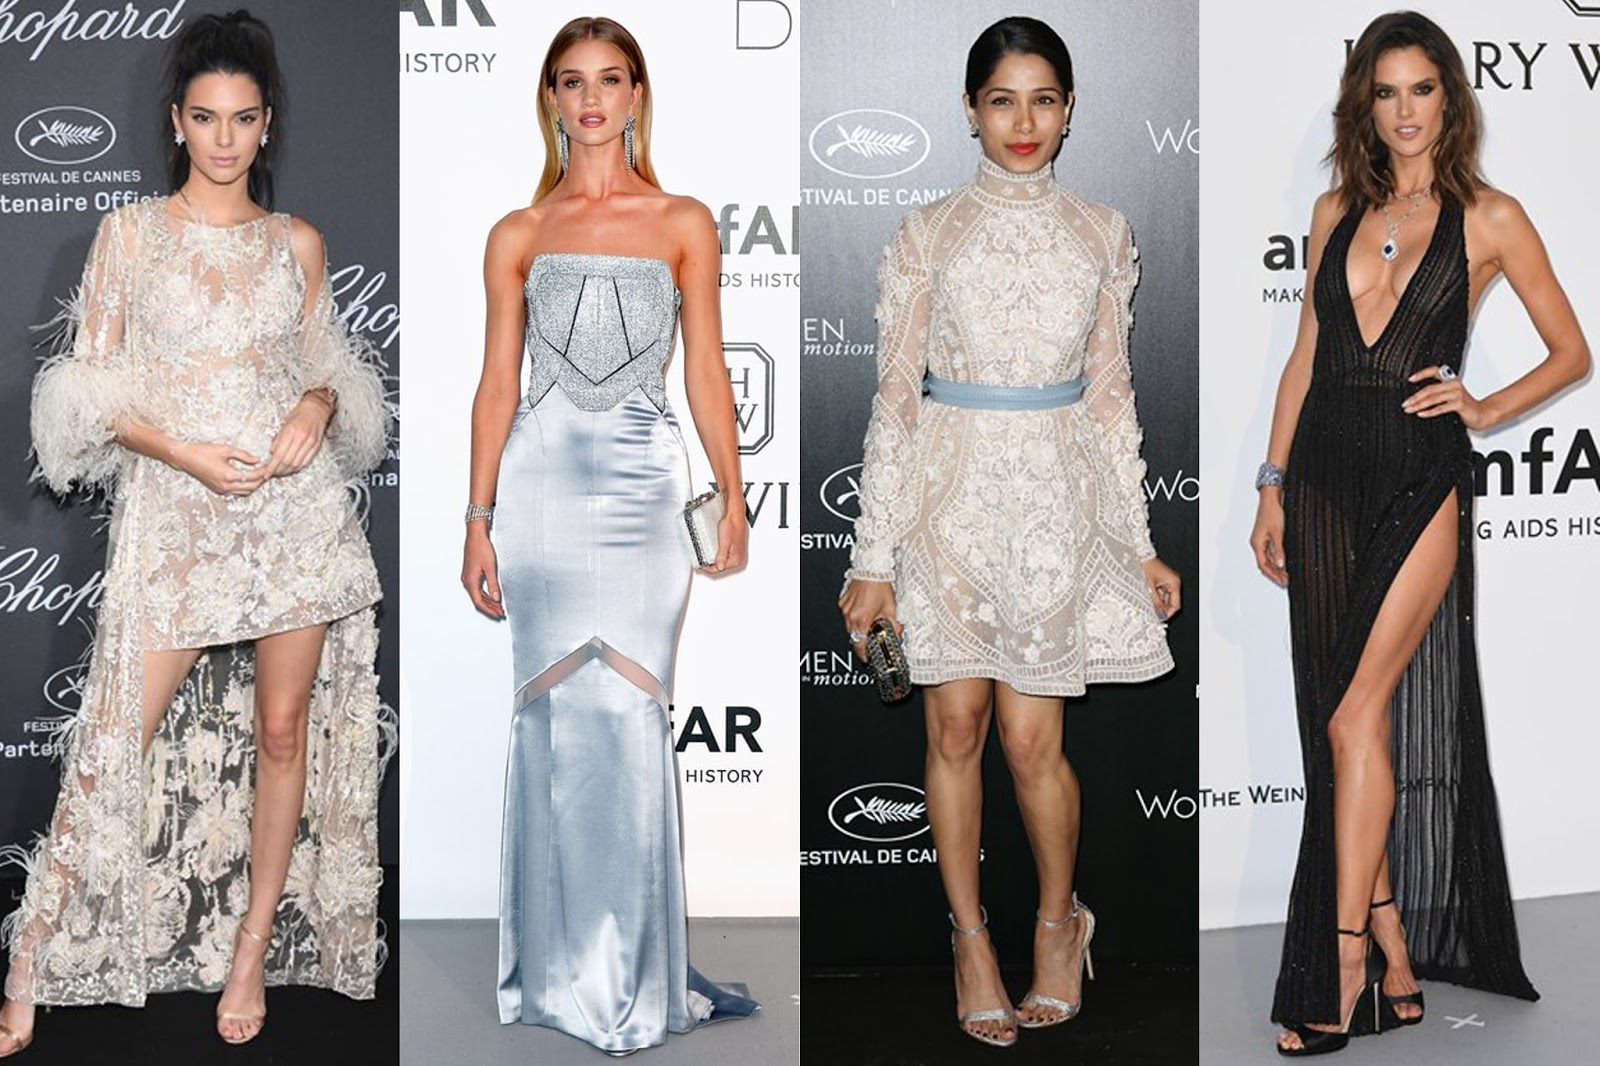 Best Dressed at Cannes Film Festival 2016